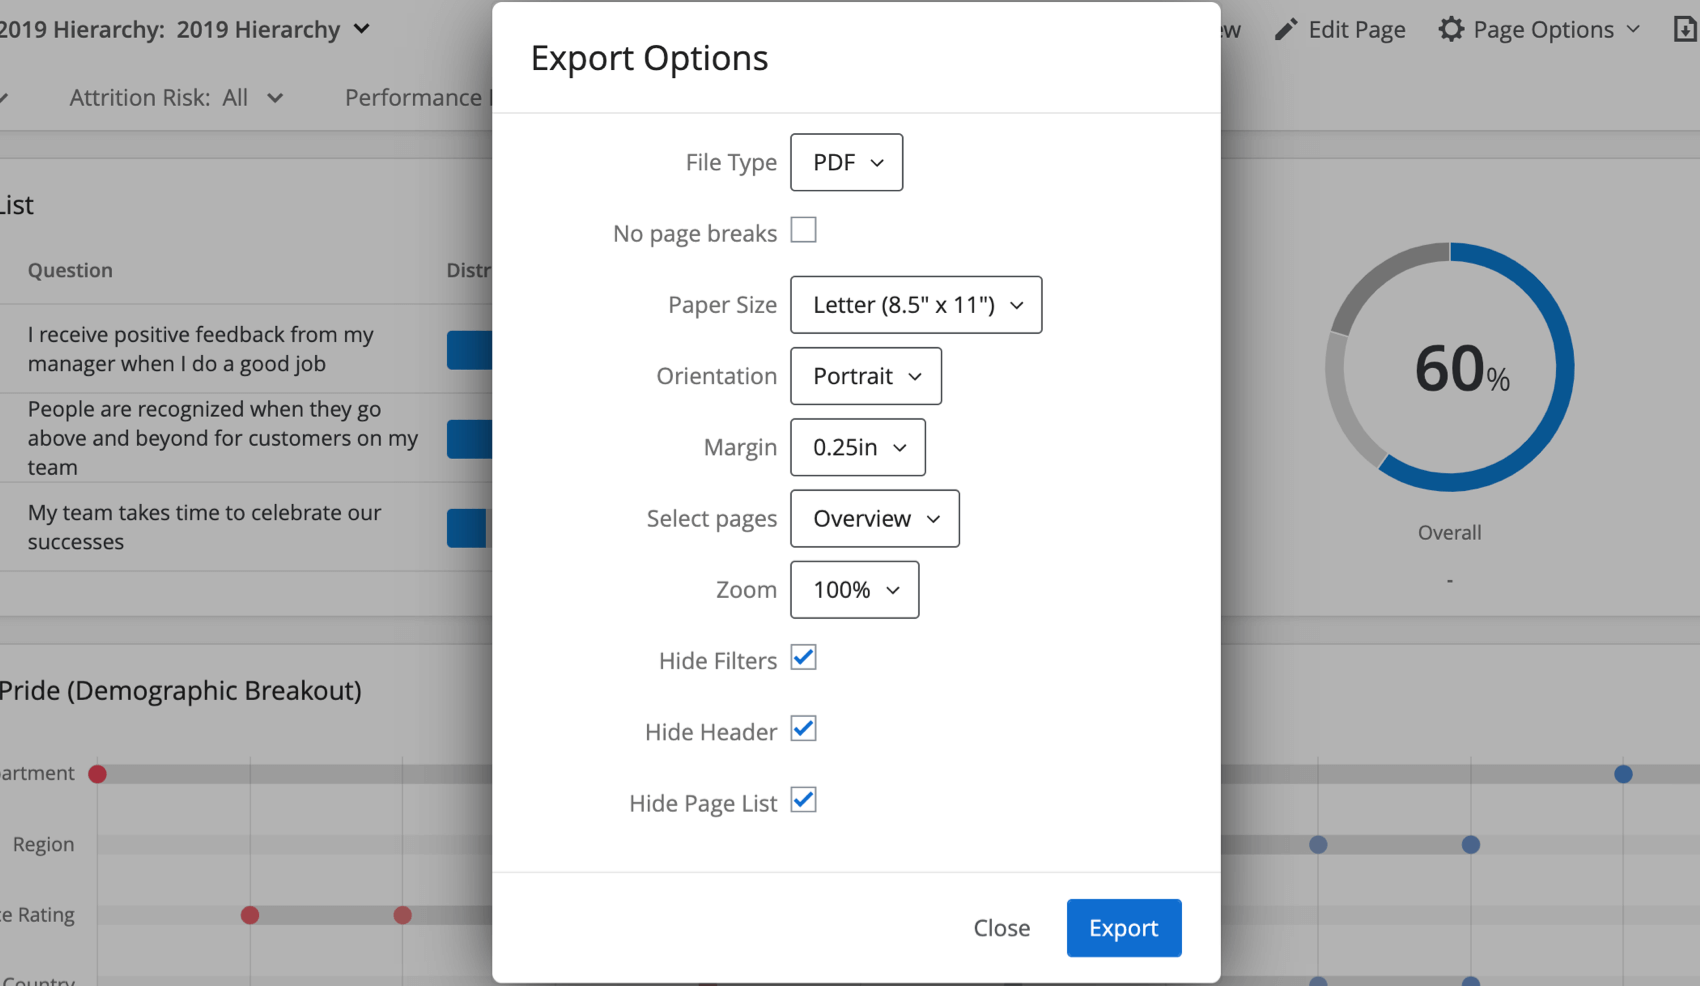 Little window opens over dashboard with options listed below